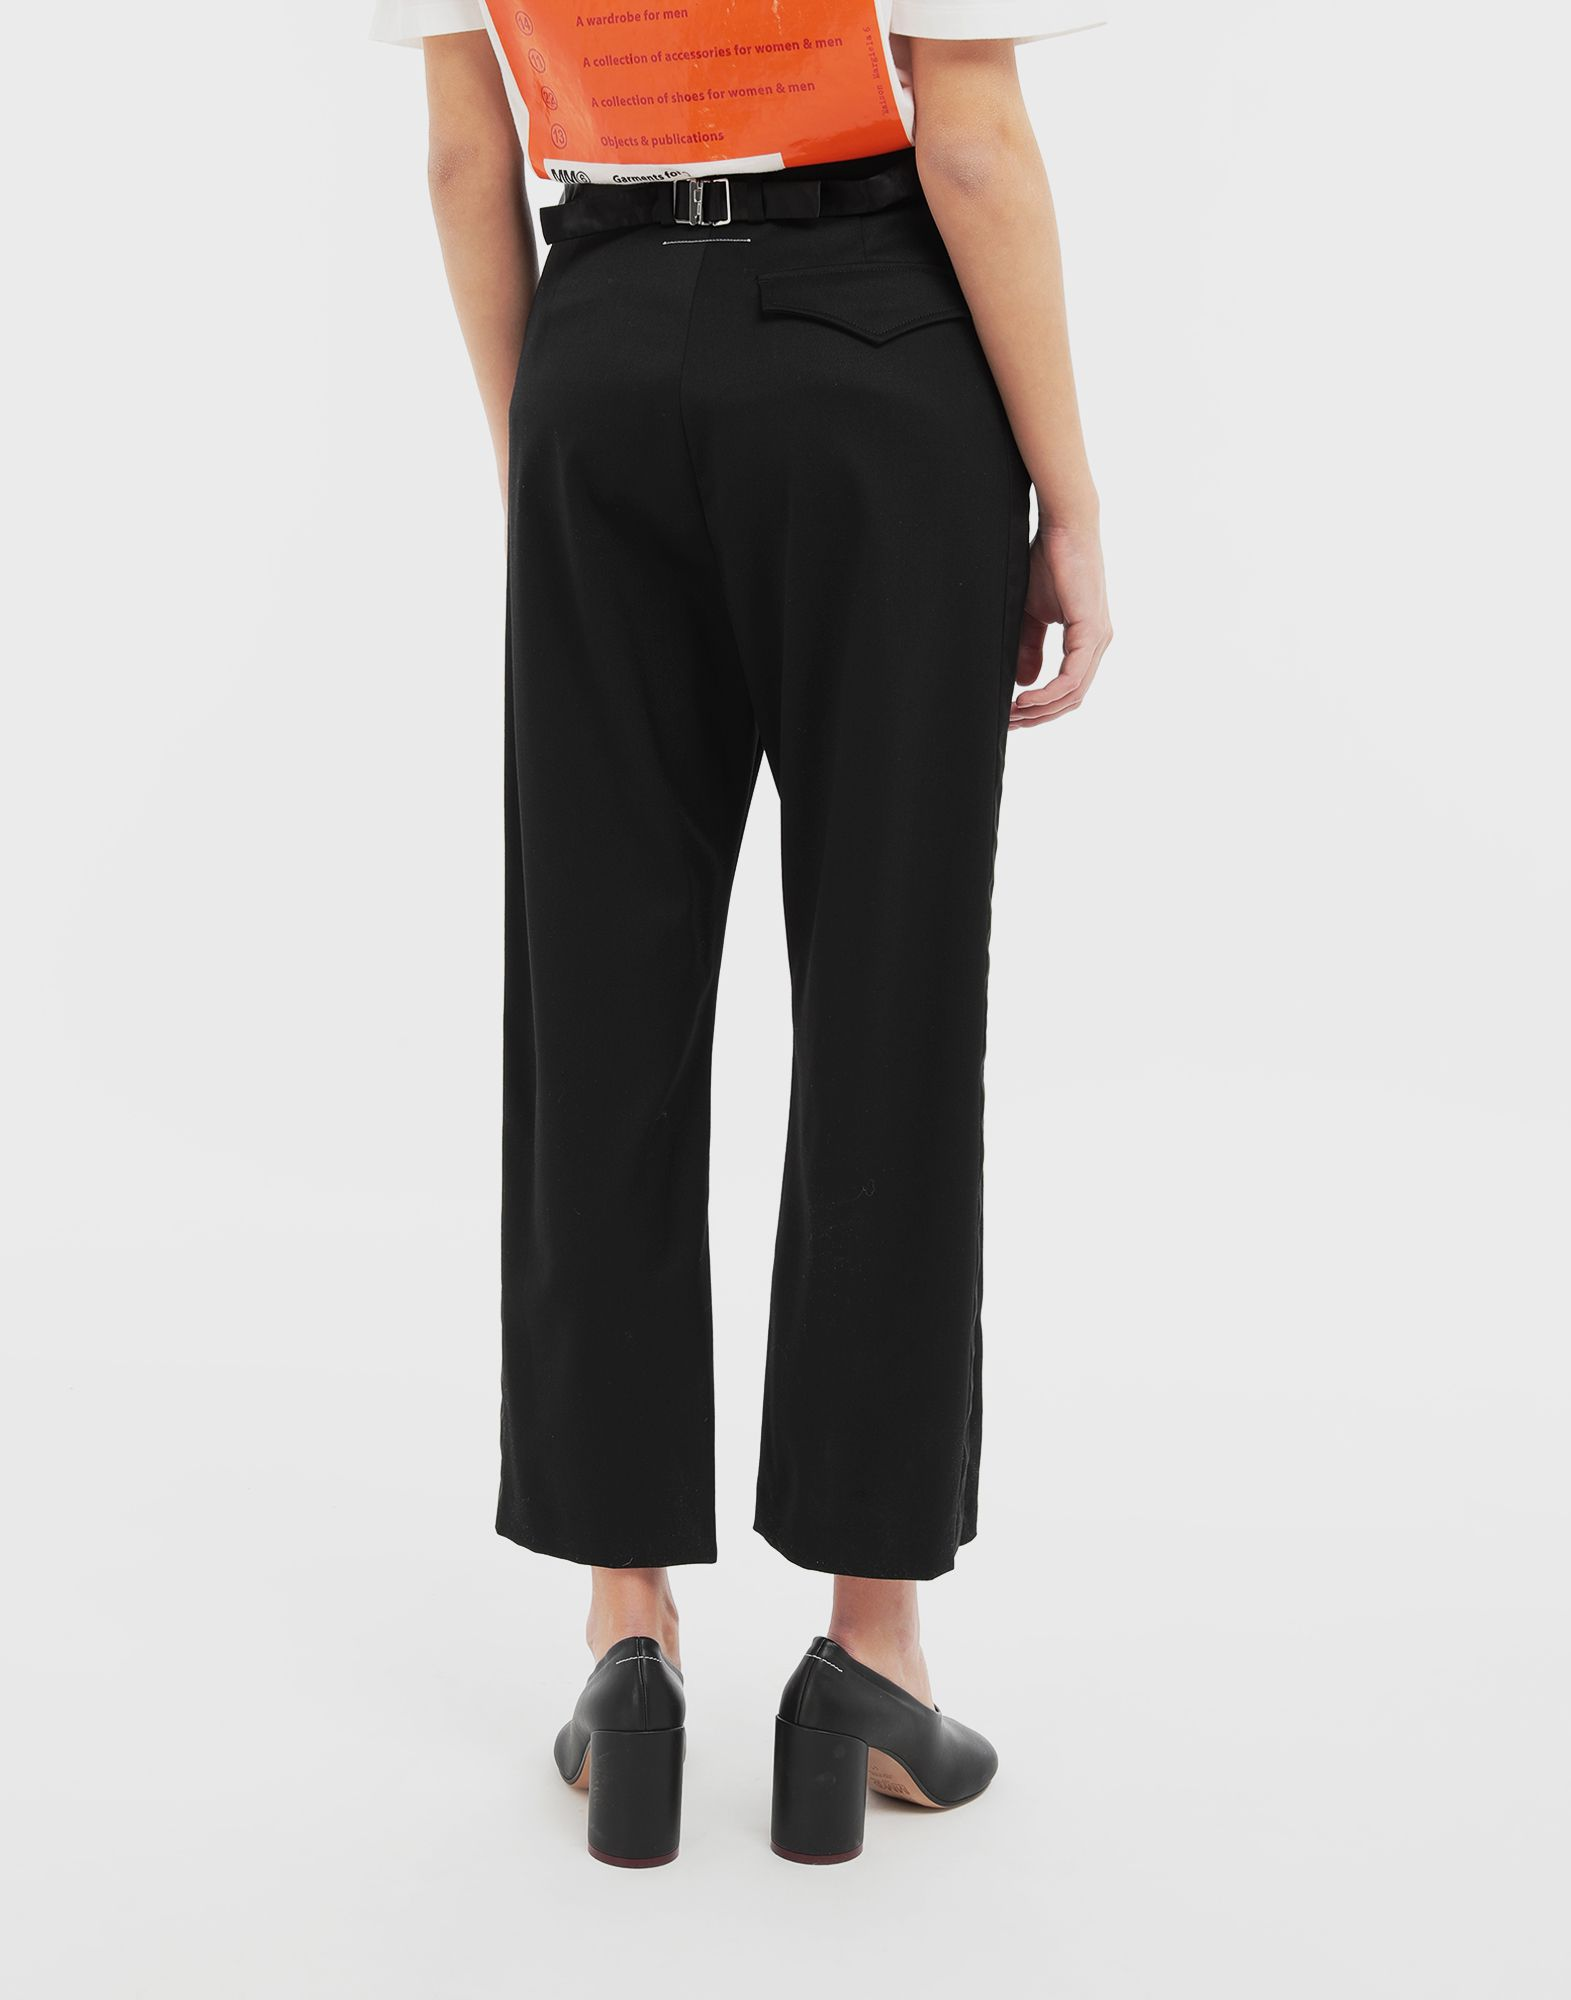 MM6 MAISON MARGIELA Trousers with belt Trousers Woman e